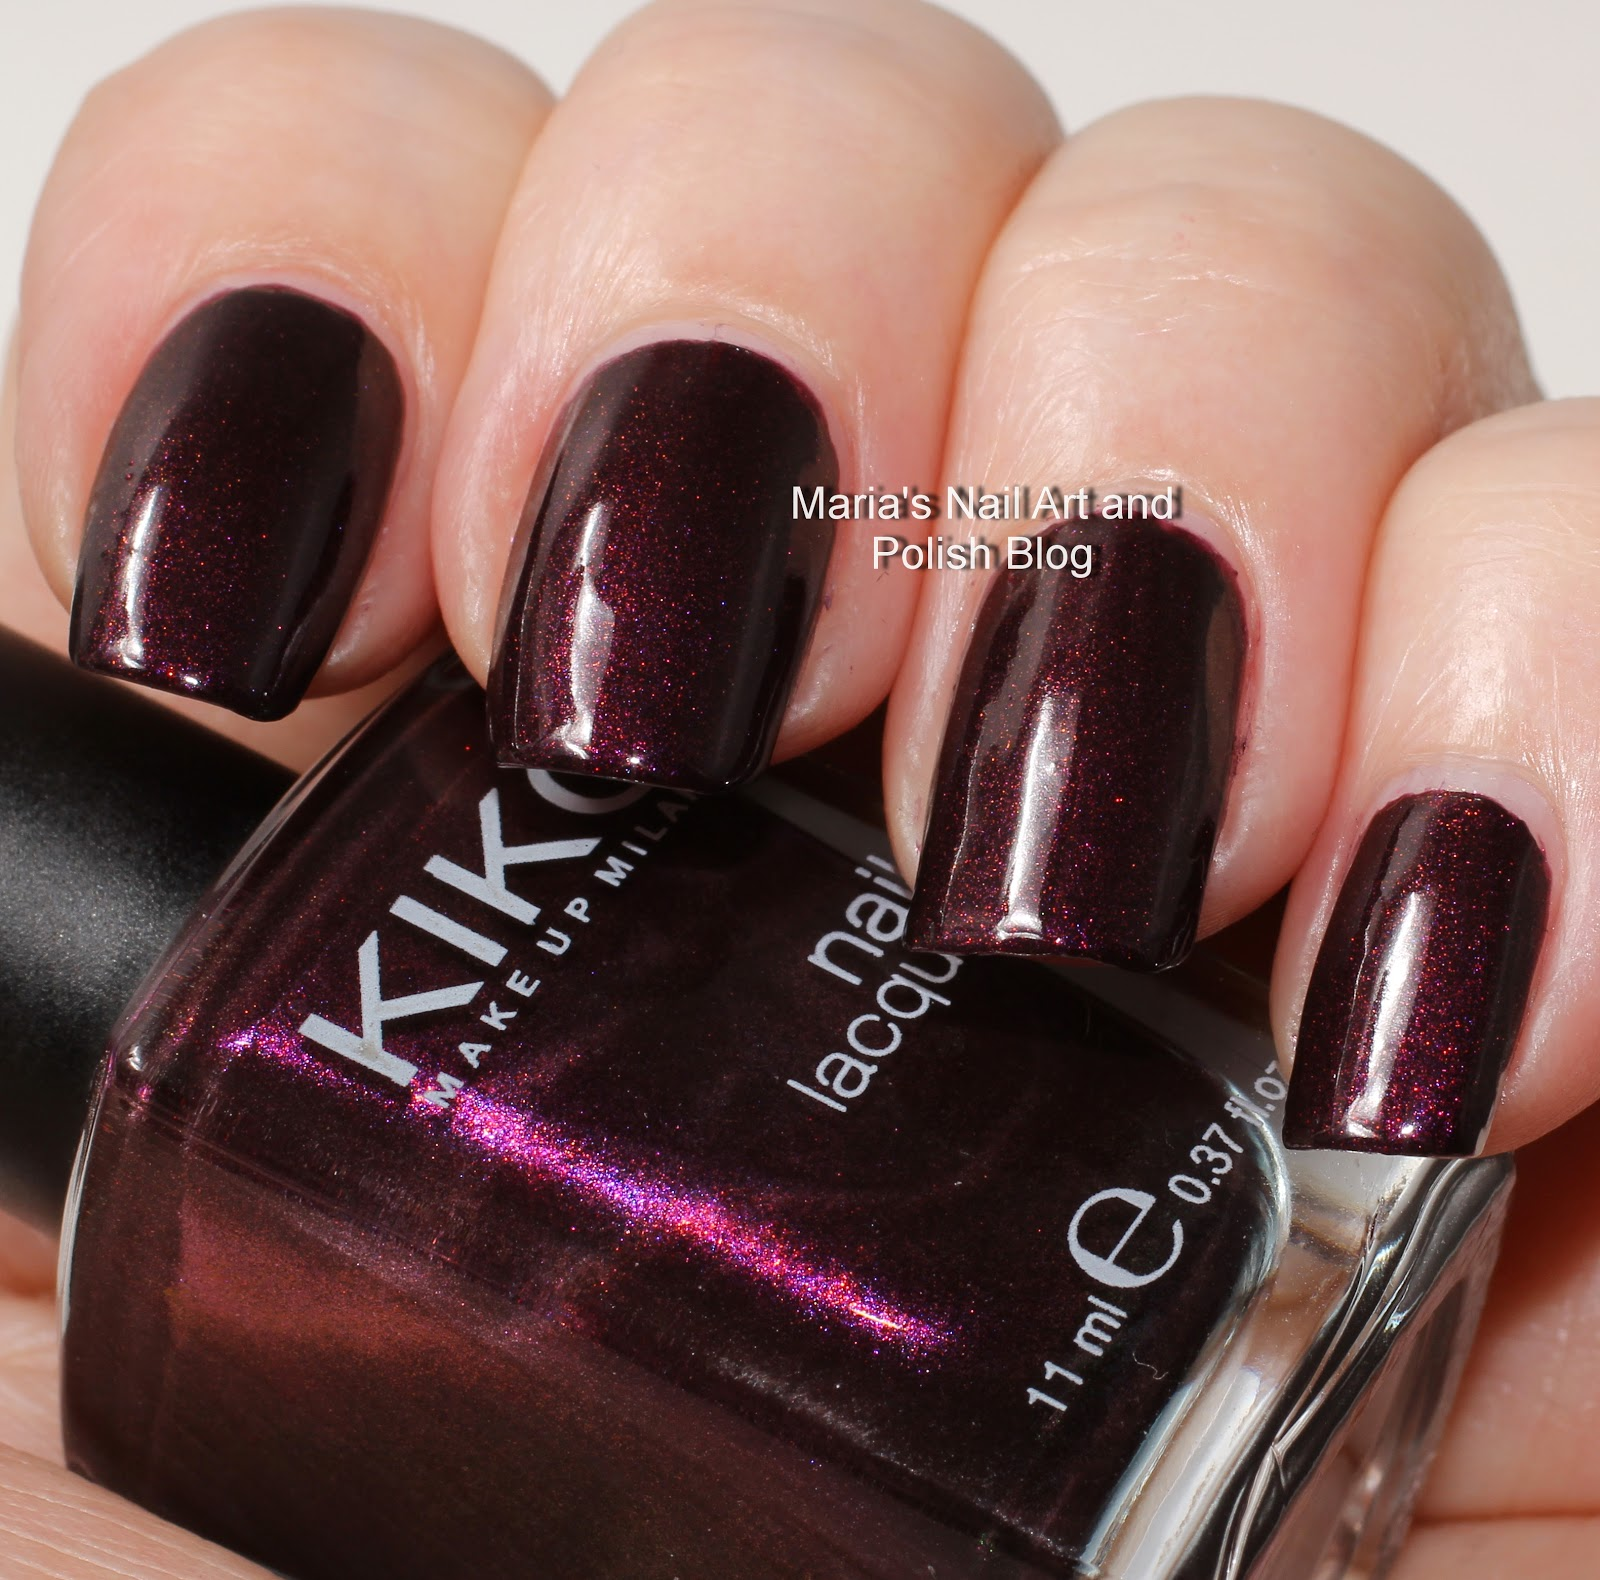 Marias Nail Art And Polish Blog Flushed With Stripes And: Marias Nail Art And Polish Blog: Kiko 245 Pearly Dark Ruby